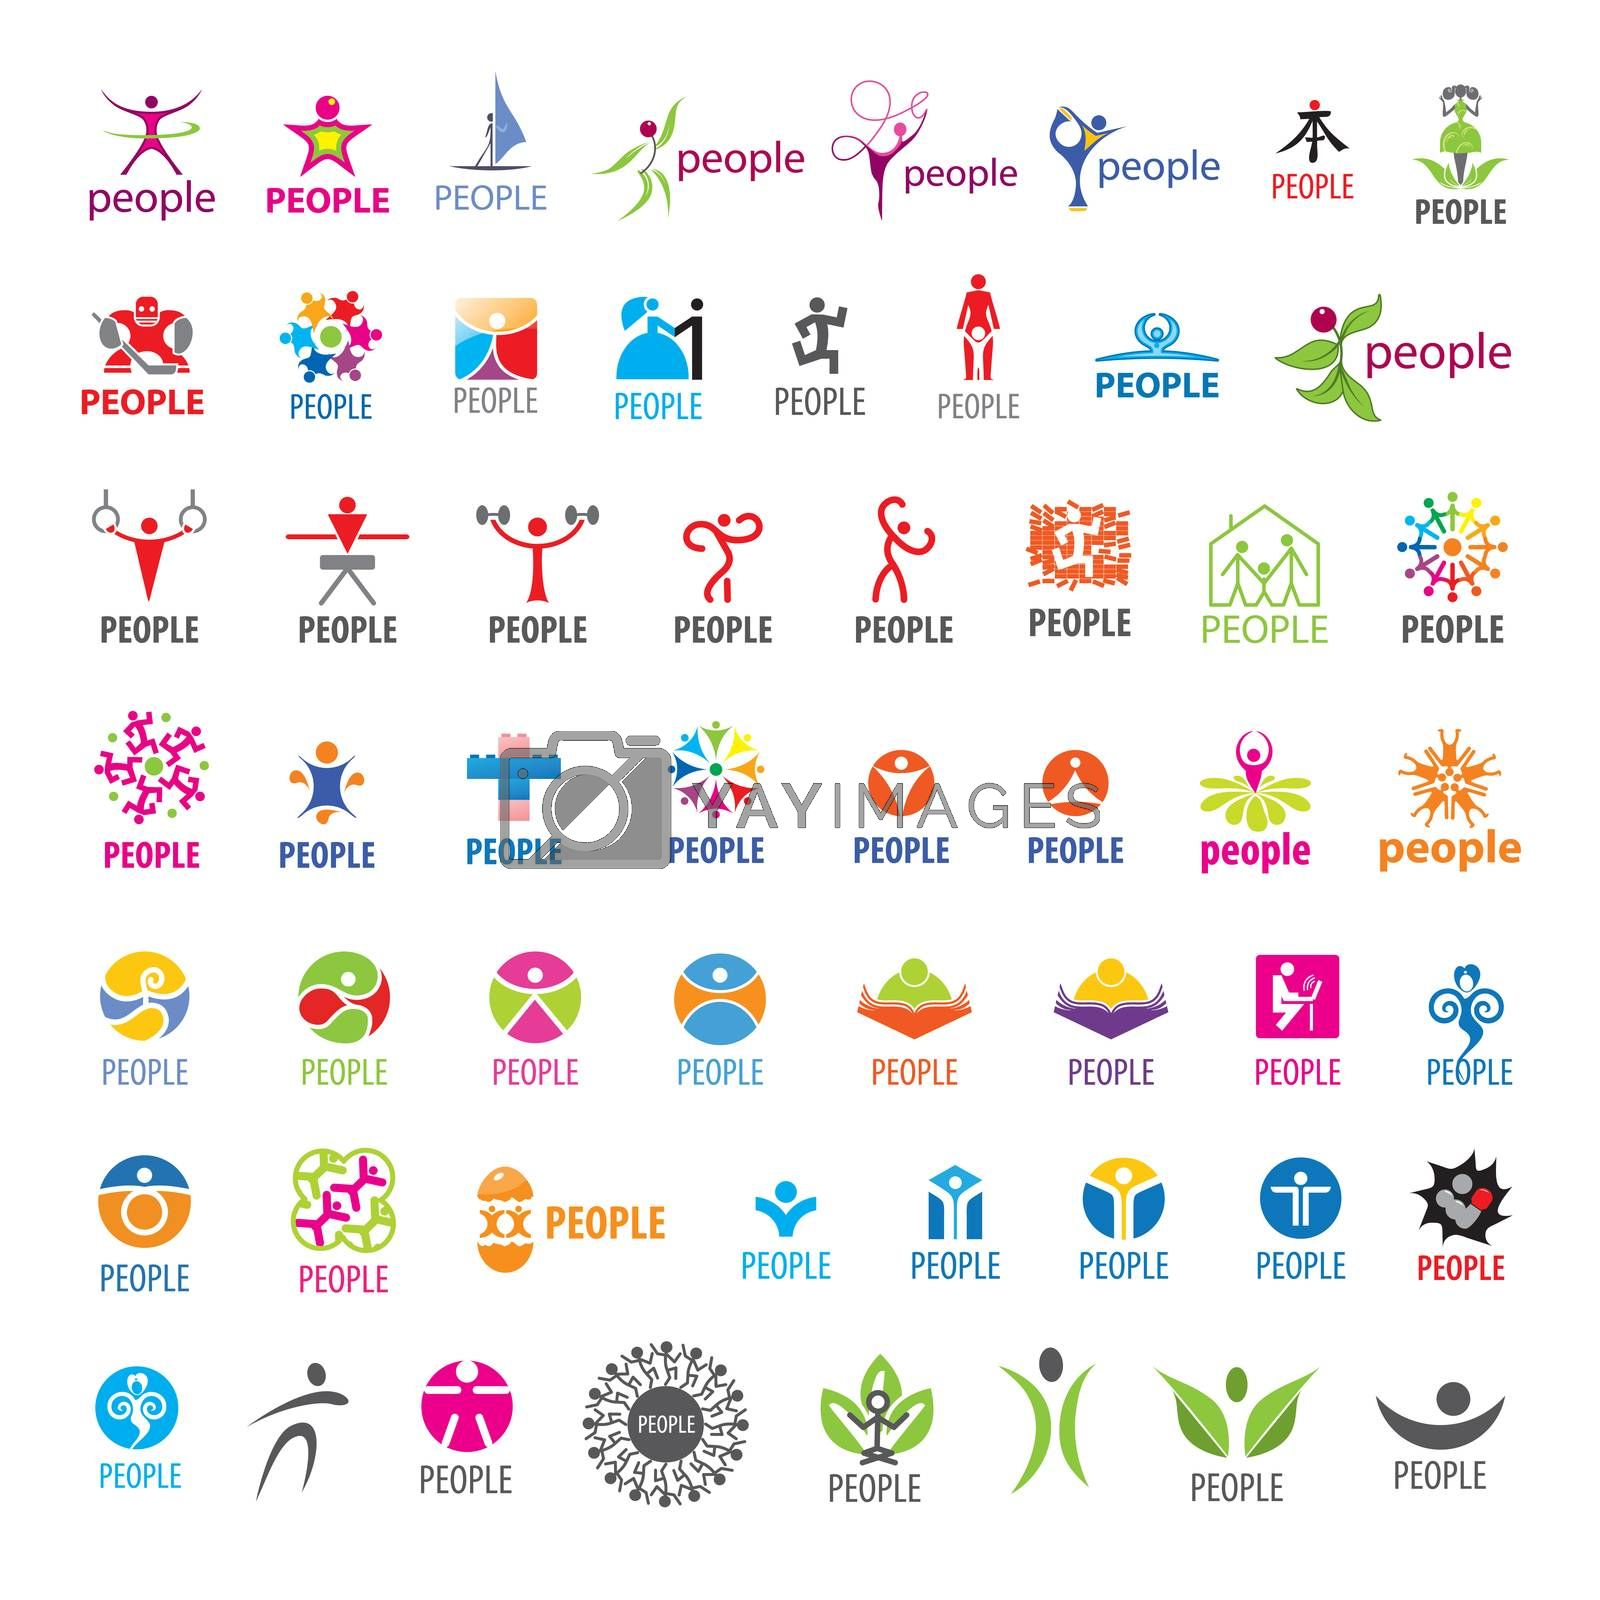 biggest collection of vector logos people  by Butenkov